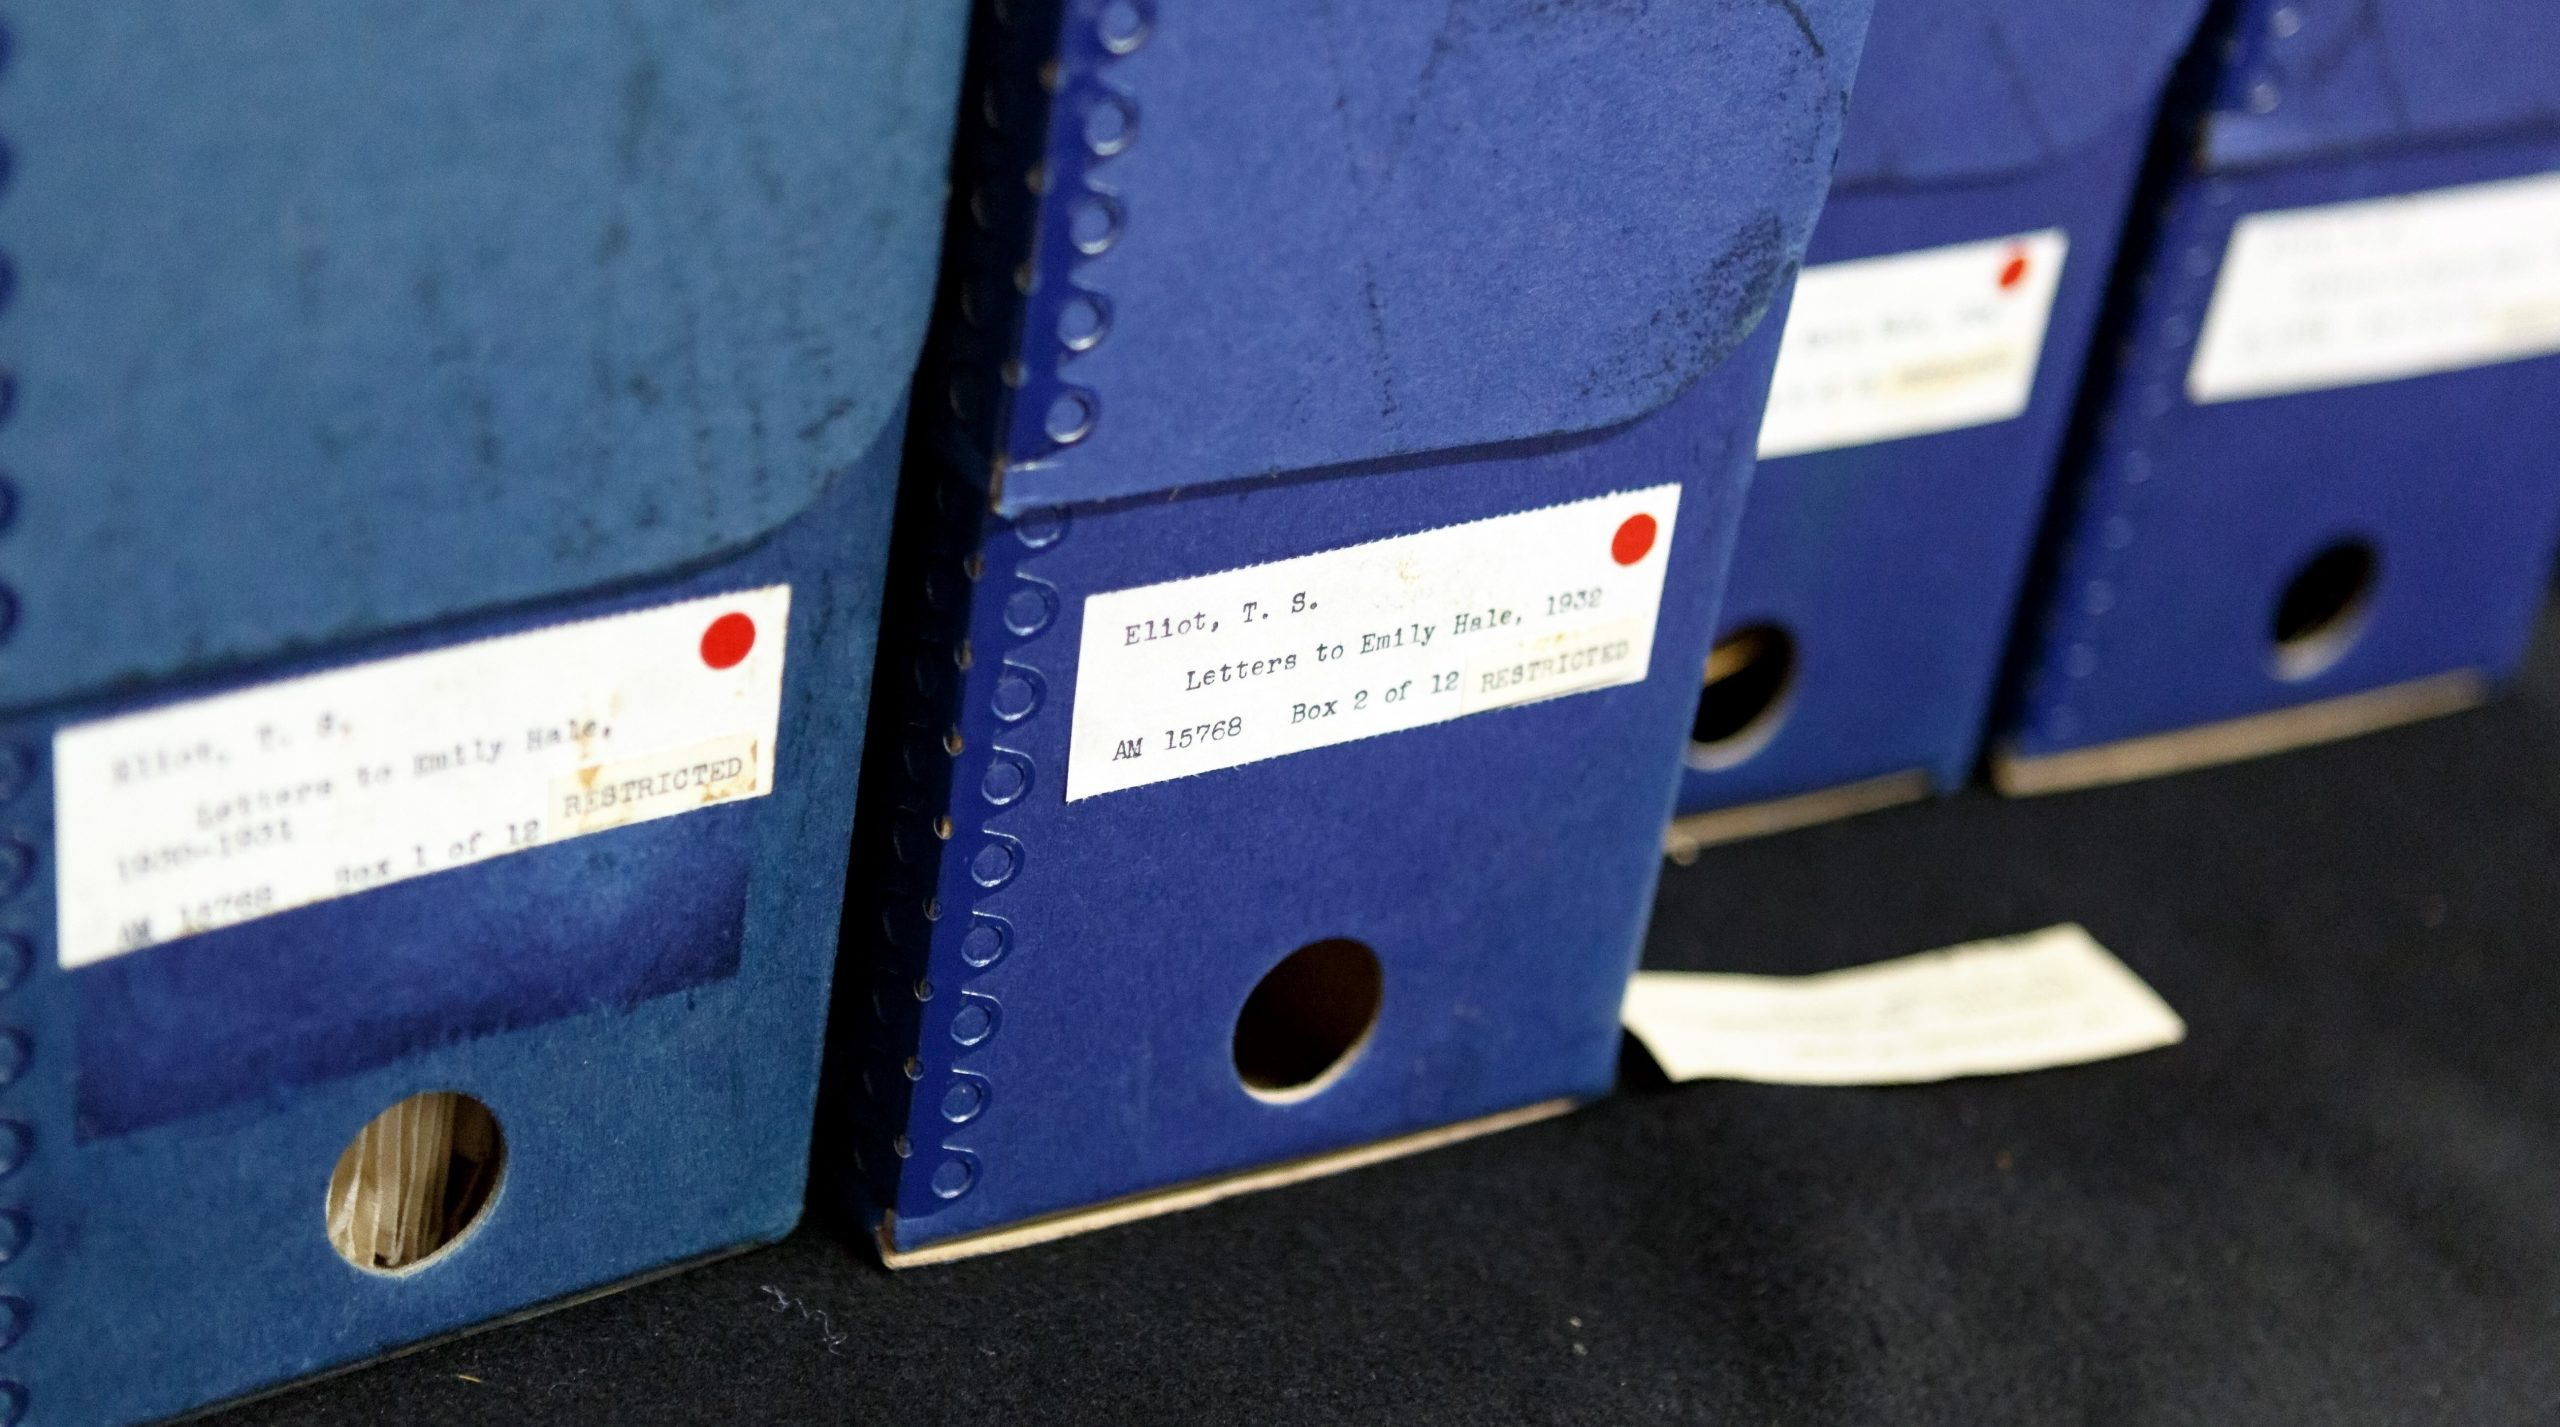 The collection of T.S. Eliot letters to Emily Hale made up 12 boxes of material. Photo by Shelley Szwast, courtesy of Princeton University Library